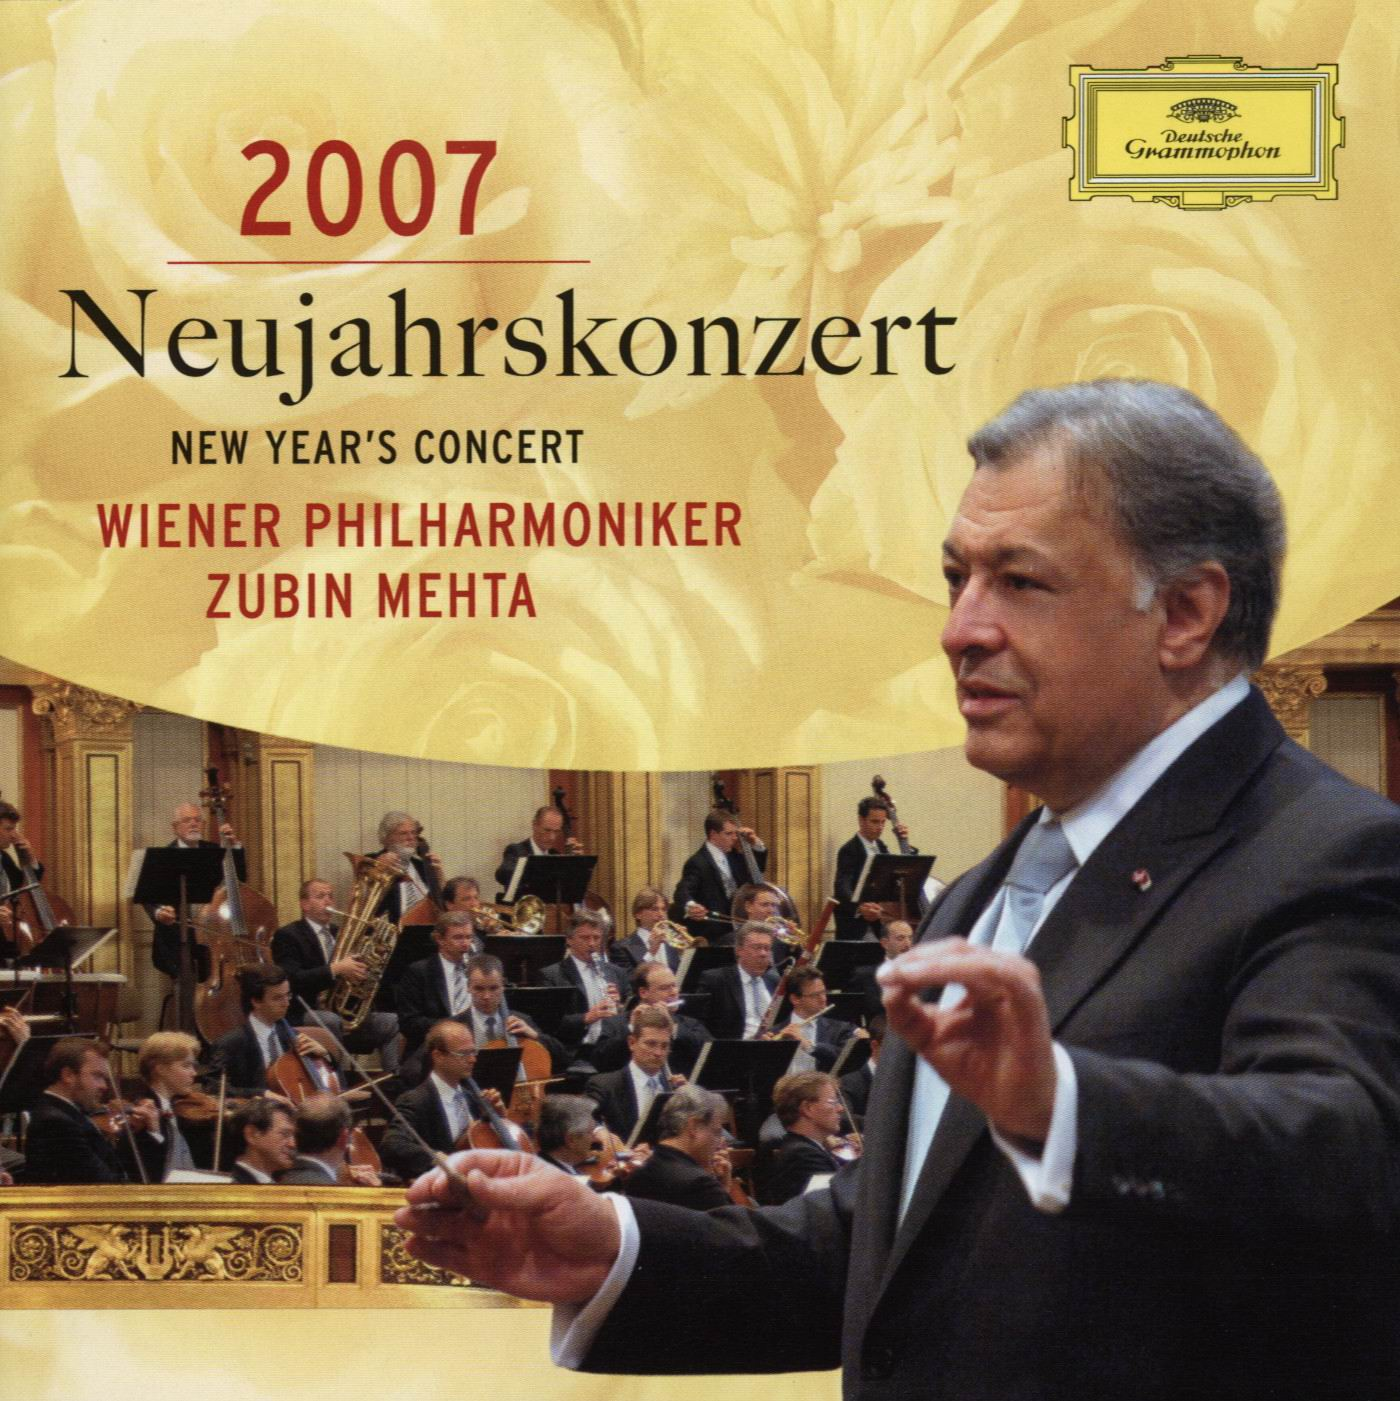 New Year's Concert 2007 - Zubin Mehta